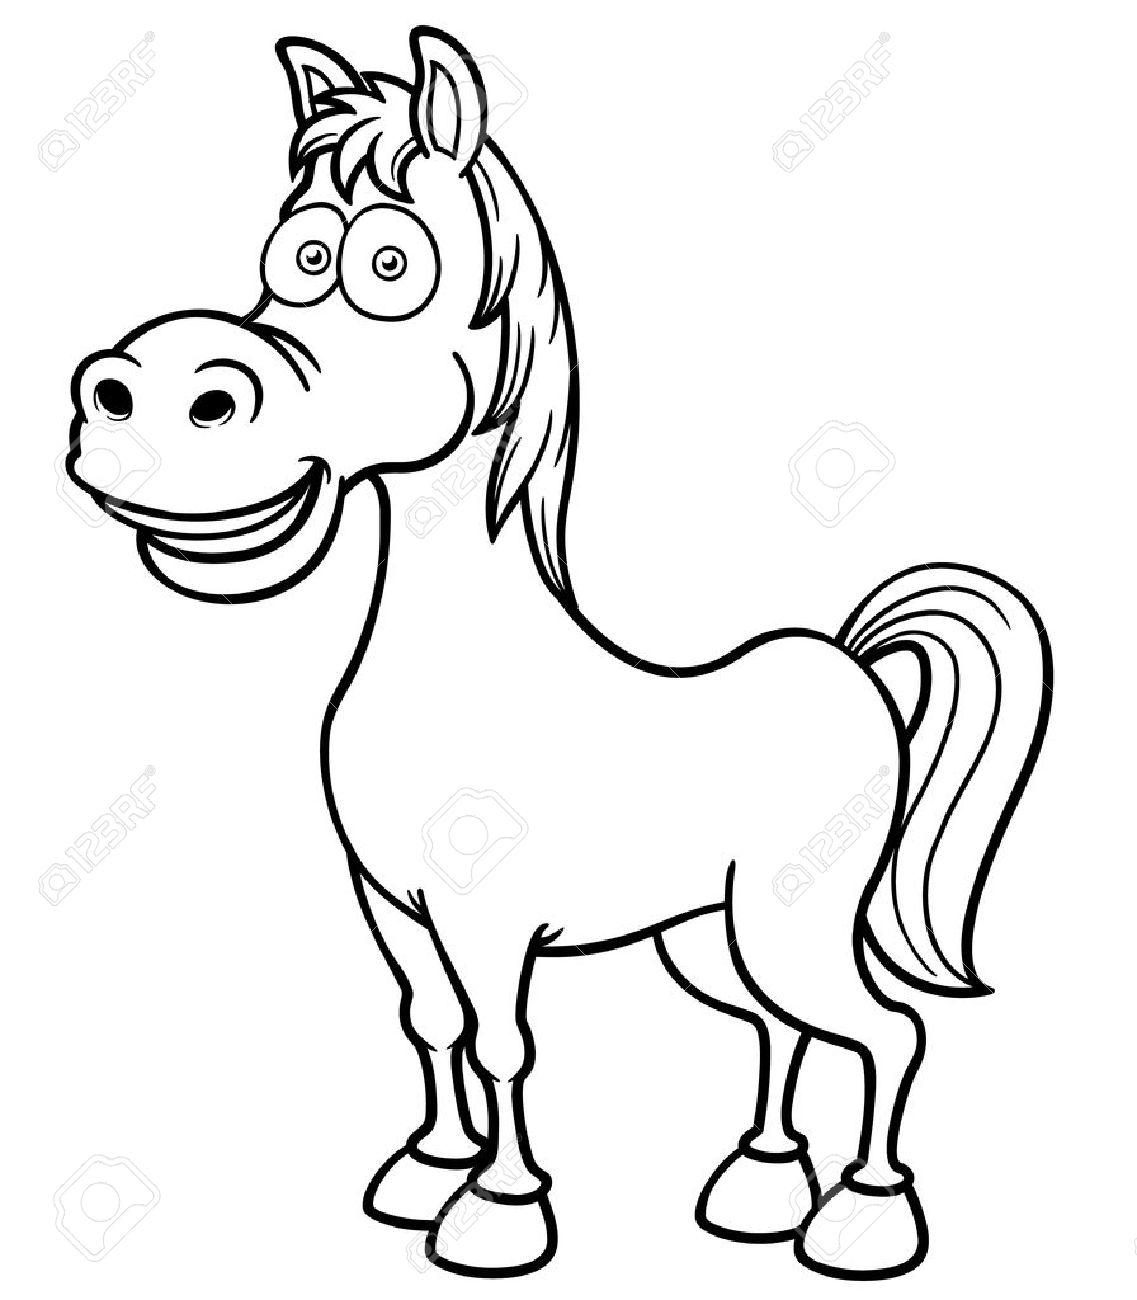 Vector Illustration Of A Horse Coloring Book Royalty Free Cliparts